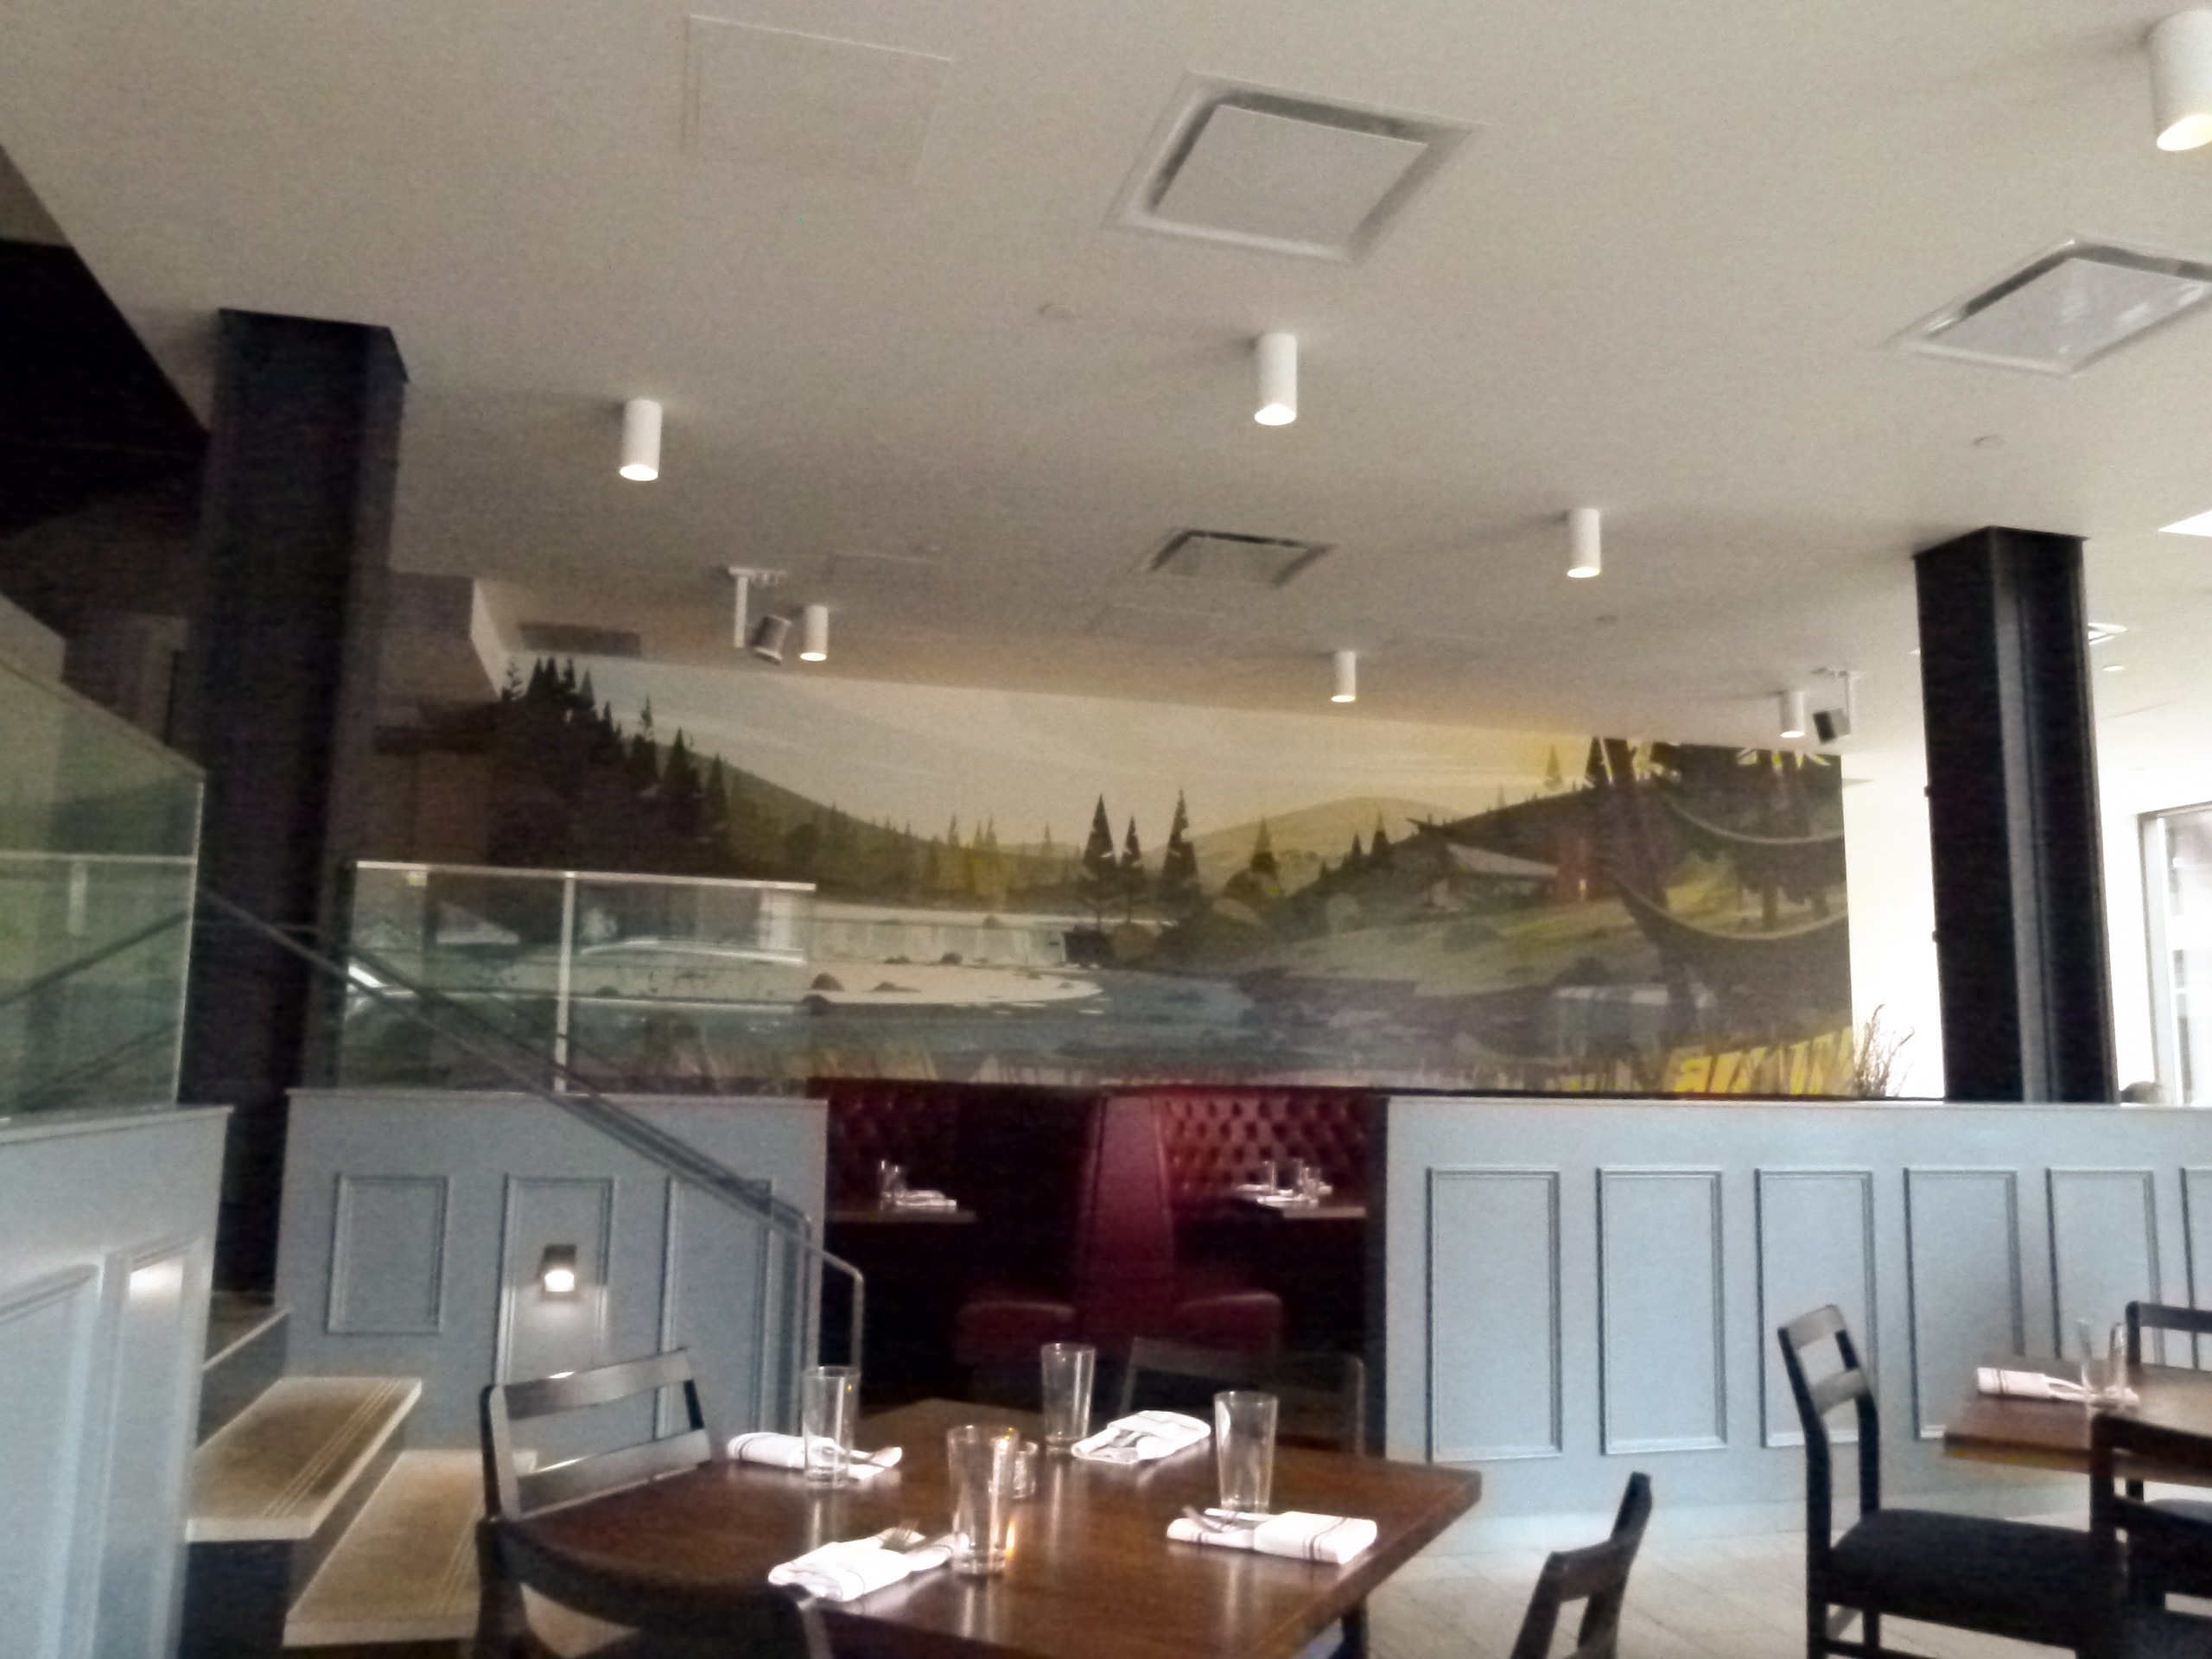 The main dining area of Union Standard before opening for lunch.